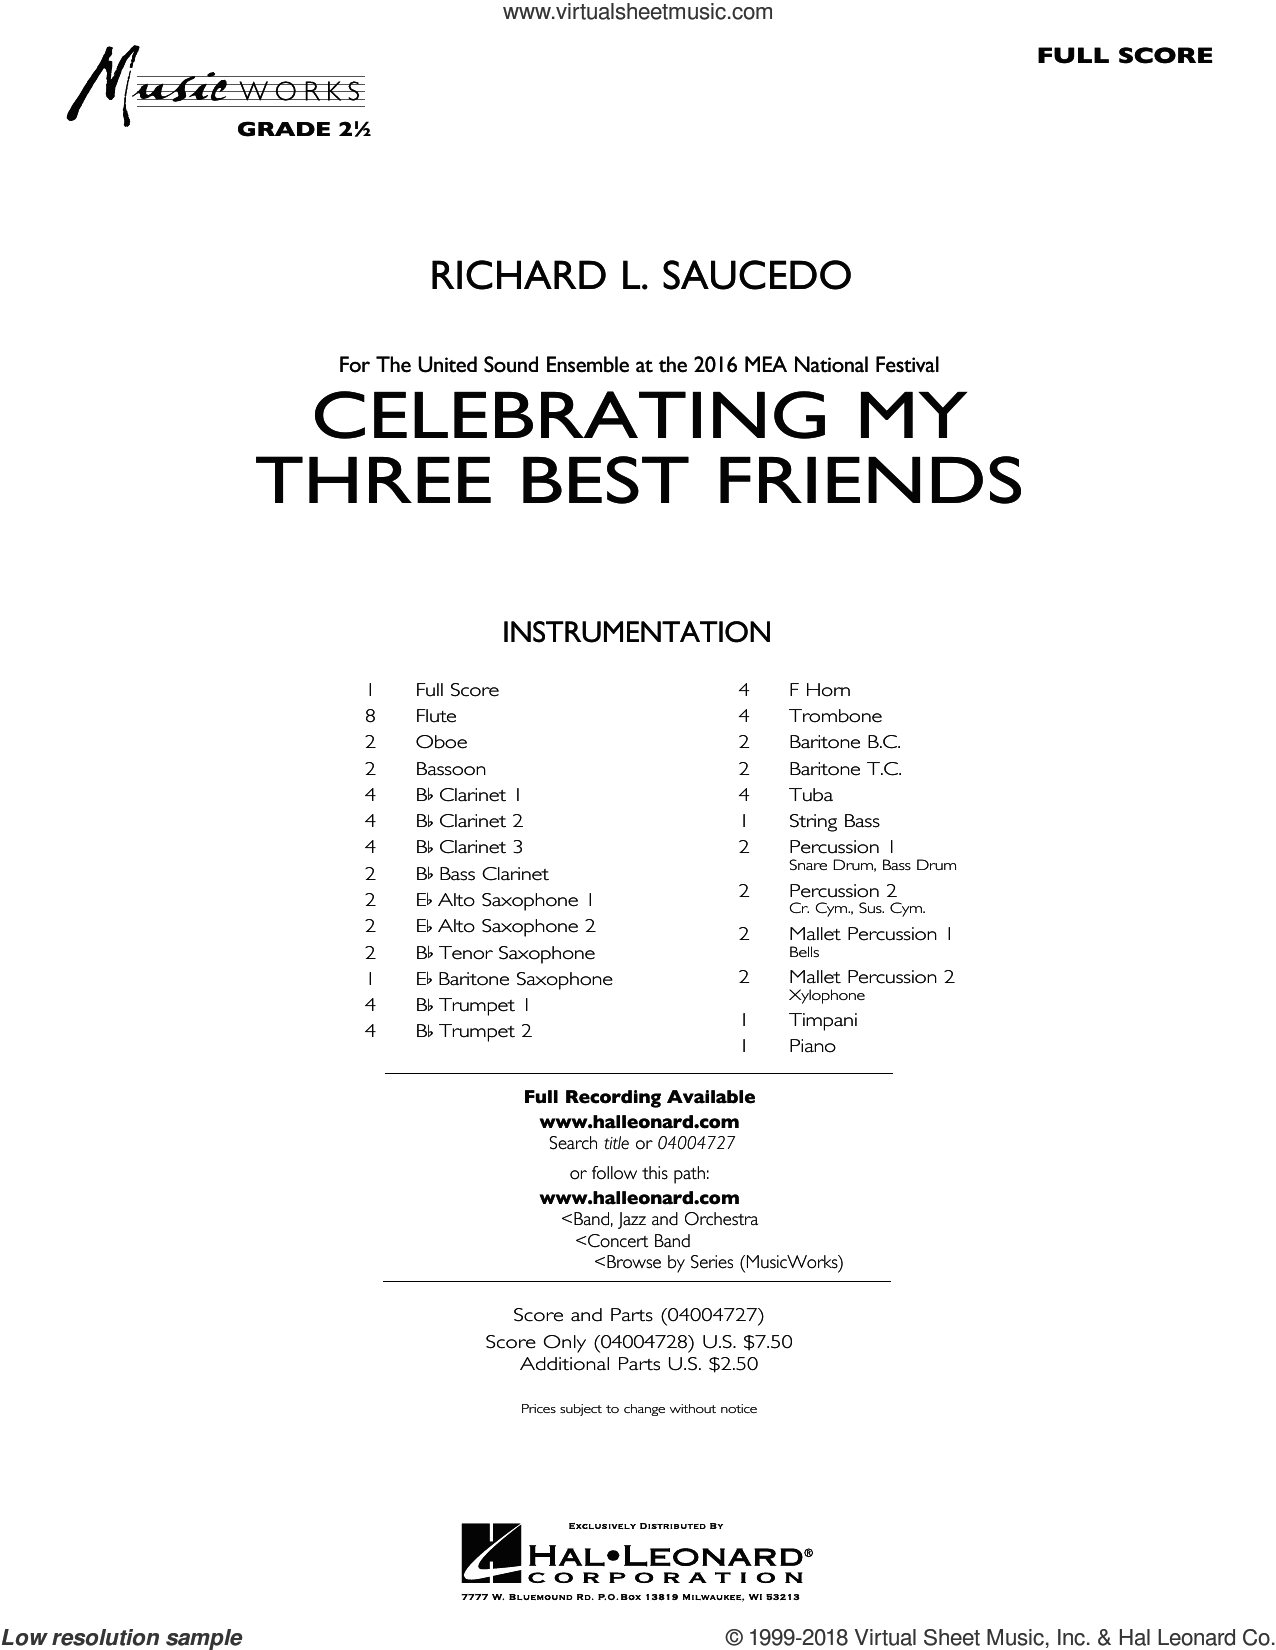 Celebrating My Three Best Friends (COMPLETE) sheet music for concert band by Richard L. Saucedo, intermediate